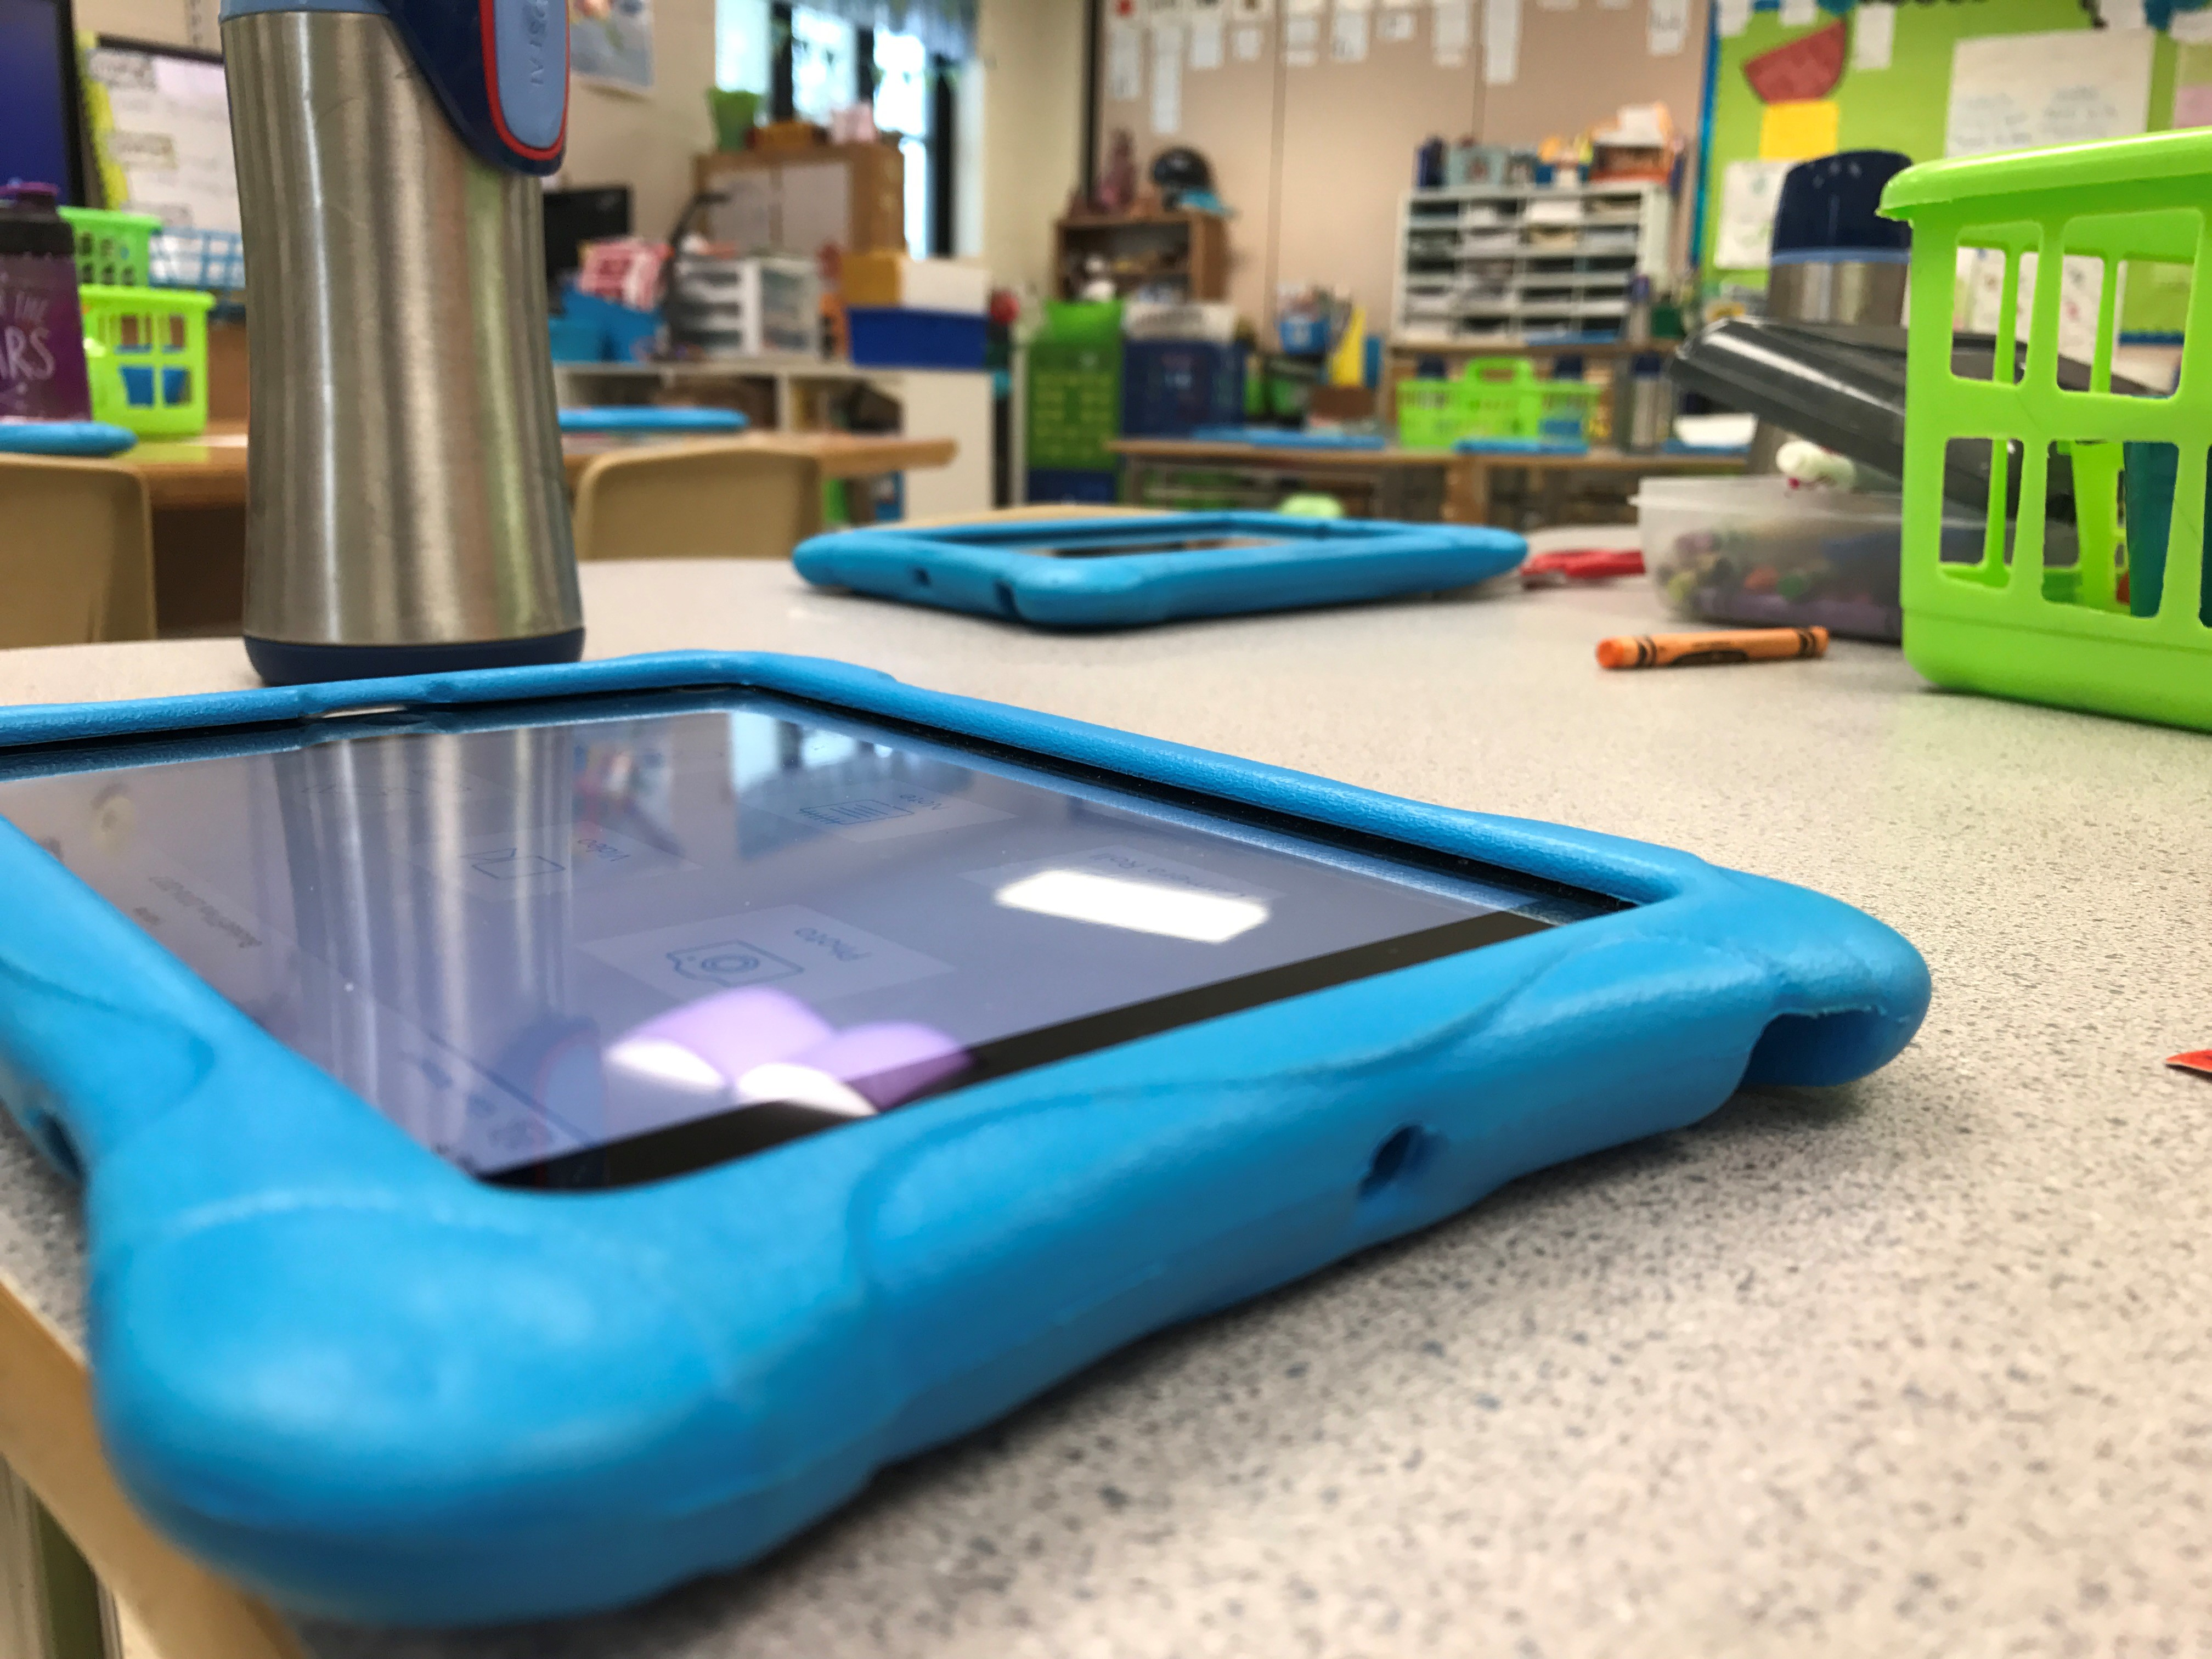 iPads sit quietly in Michelle Flicek's class before students return from recess. (WLUK/Gabrielle Mays)